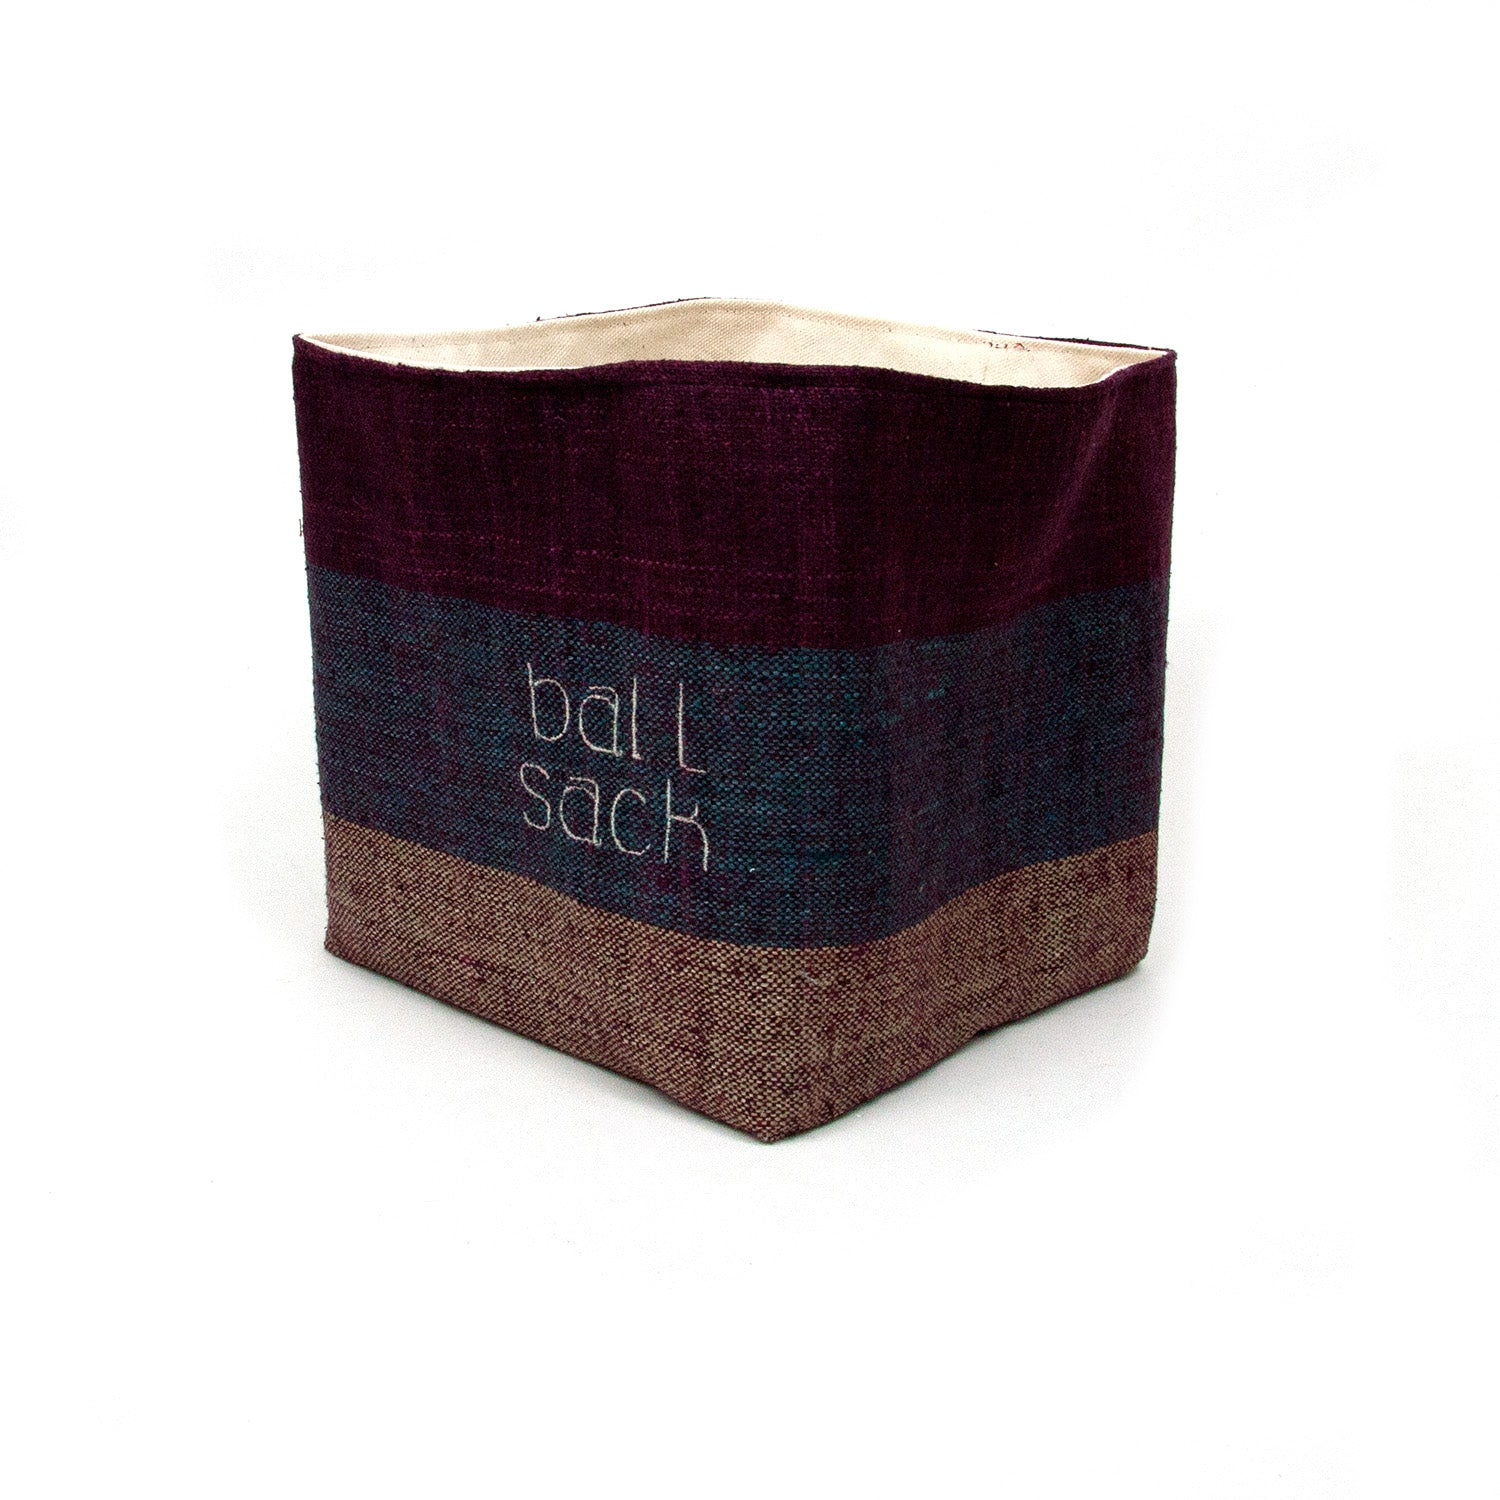 Ball Sack Basket - Silk